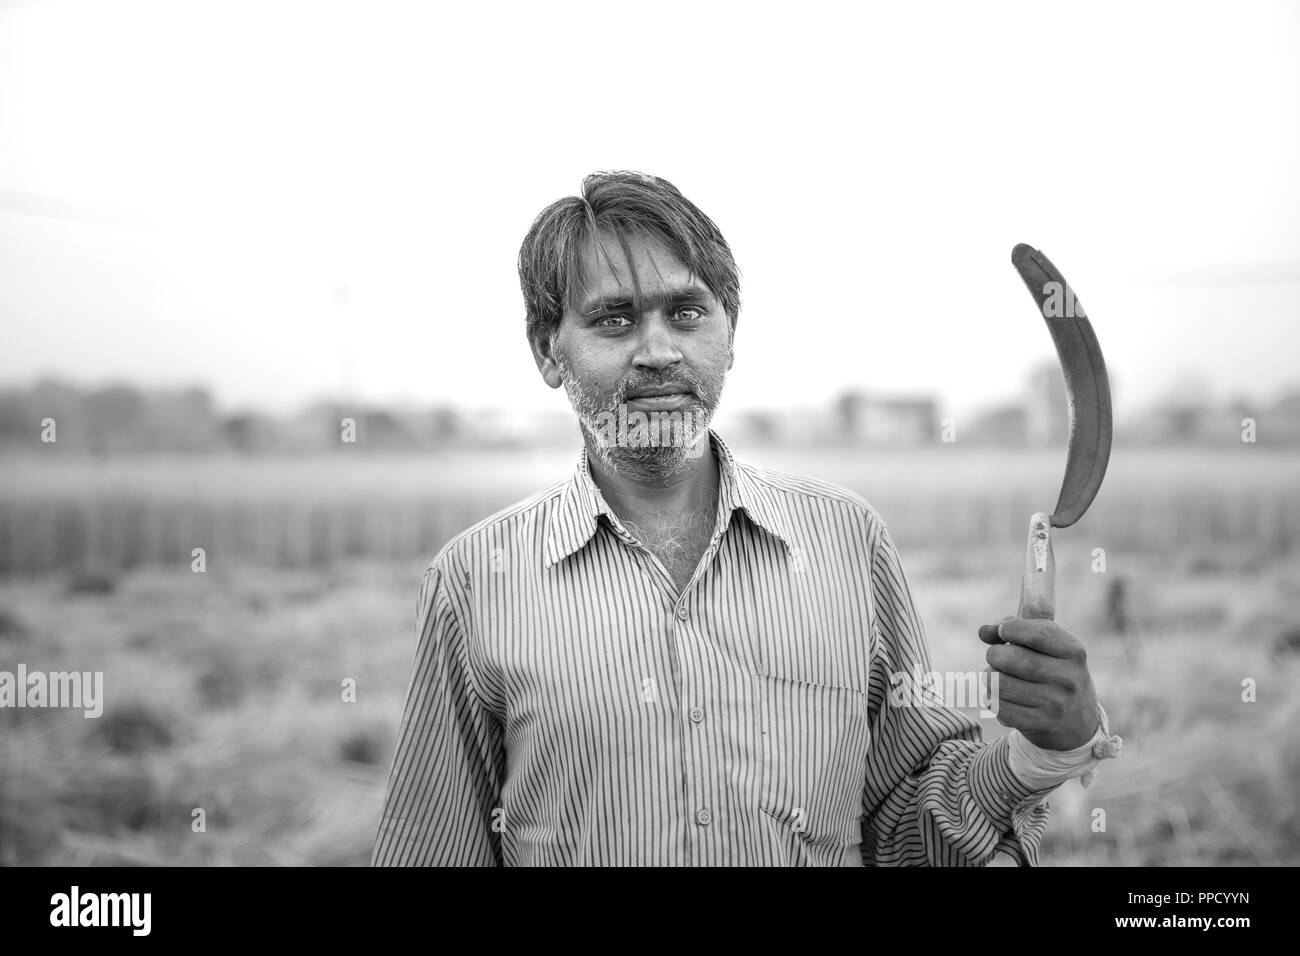 Black & white portrait of Indian farmer in wheat field crop carrying sickle on his shoulder & looking at camera. - Stock Image